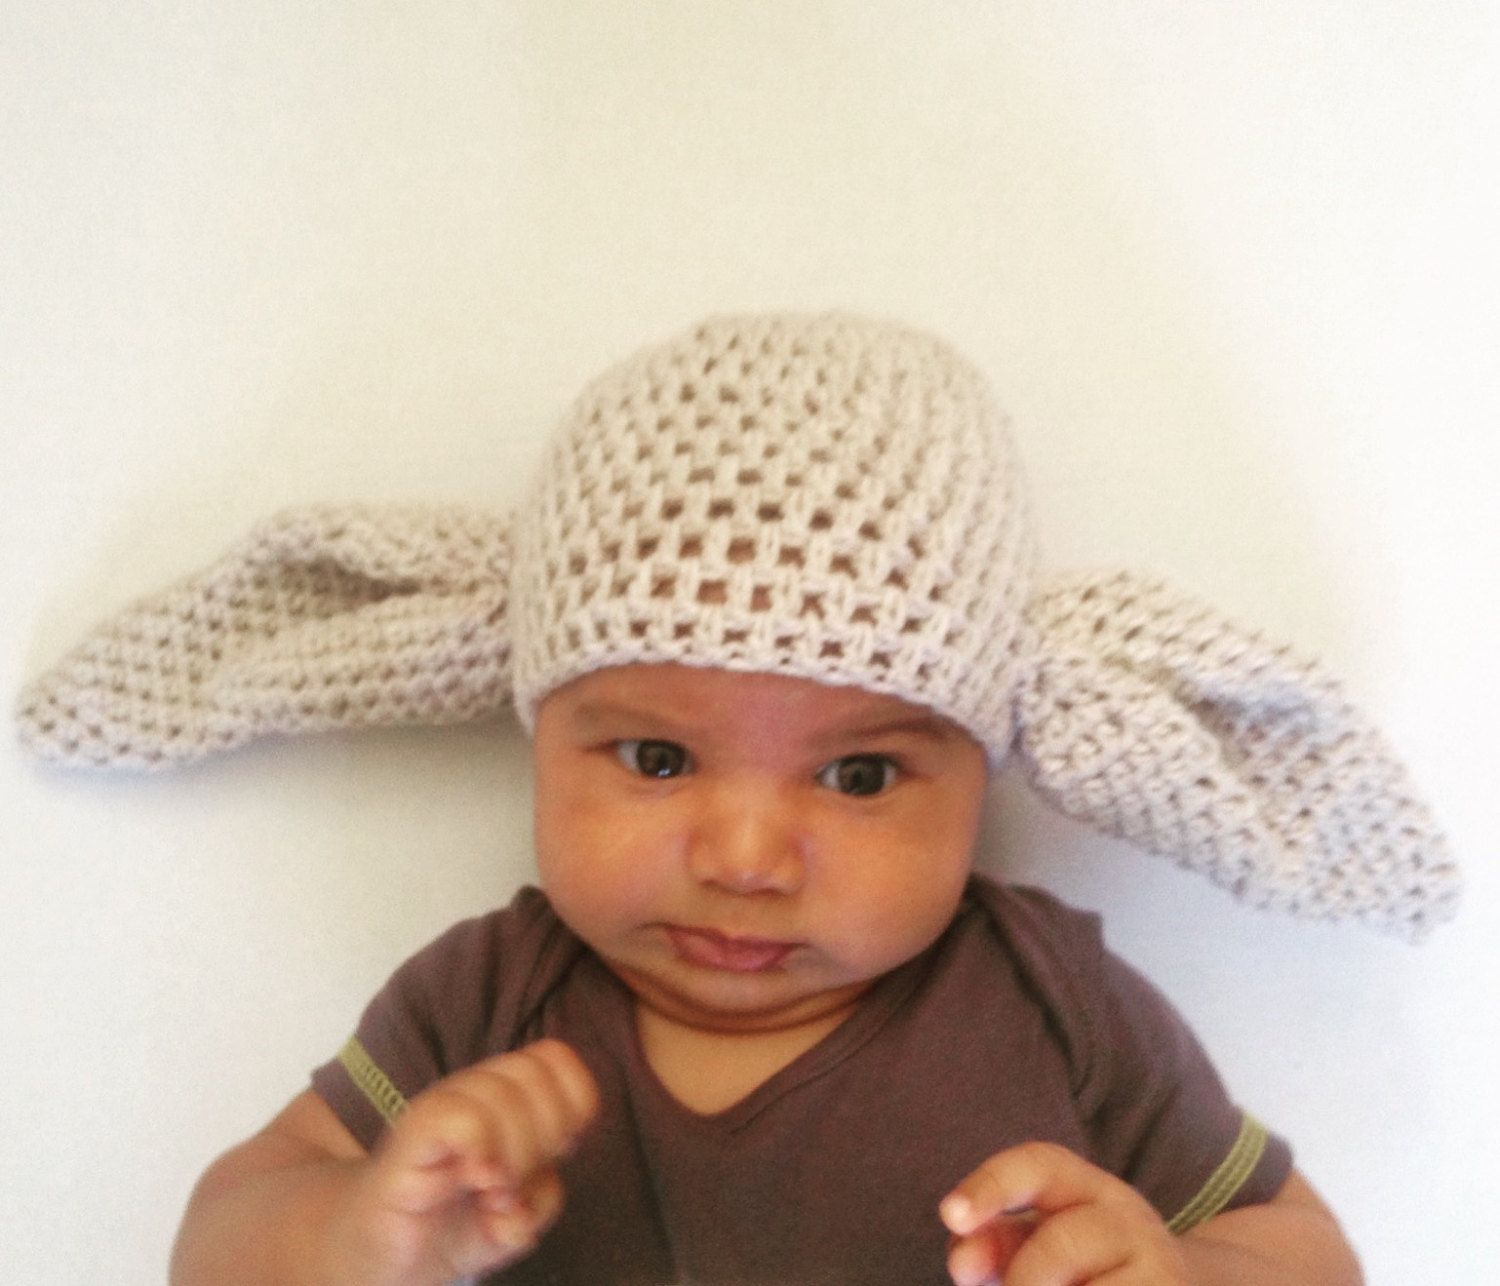 Crochet big ears hat, dobby hat, yoda hat, crochet beanie, novelty ...